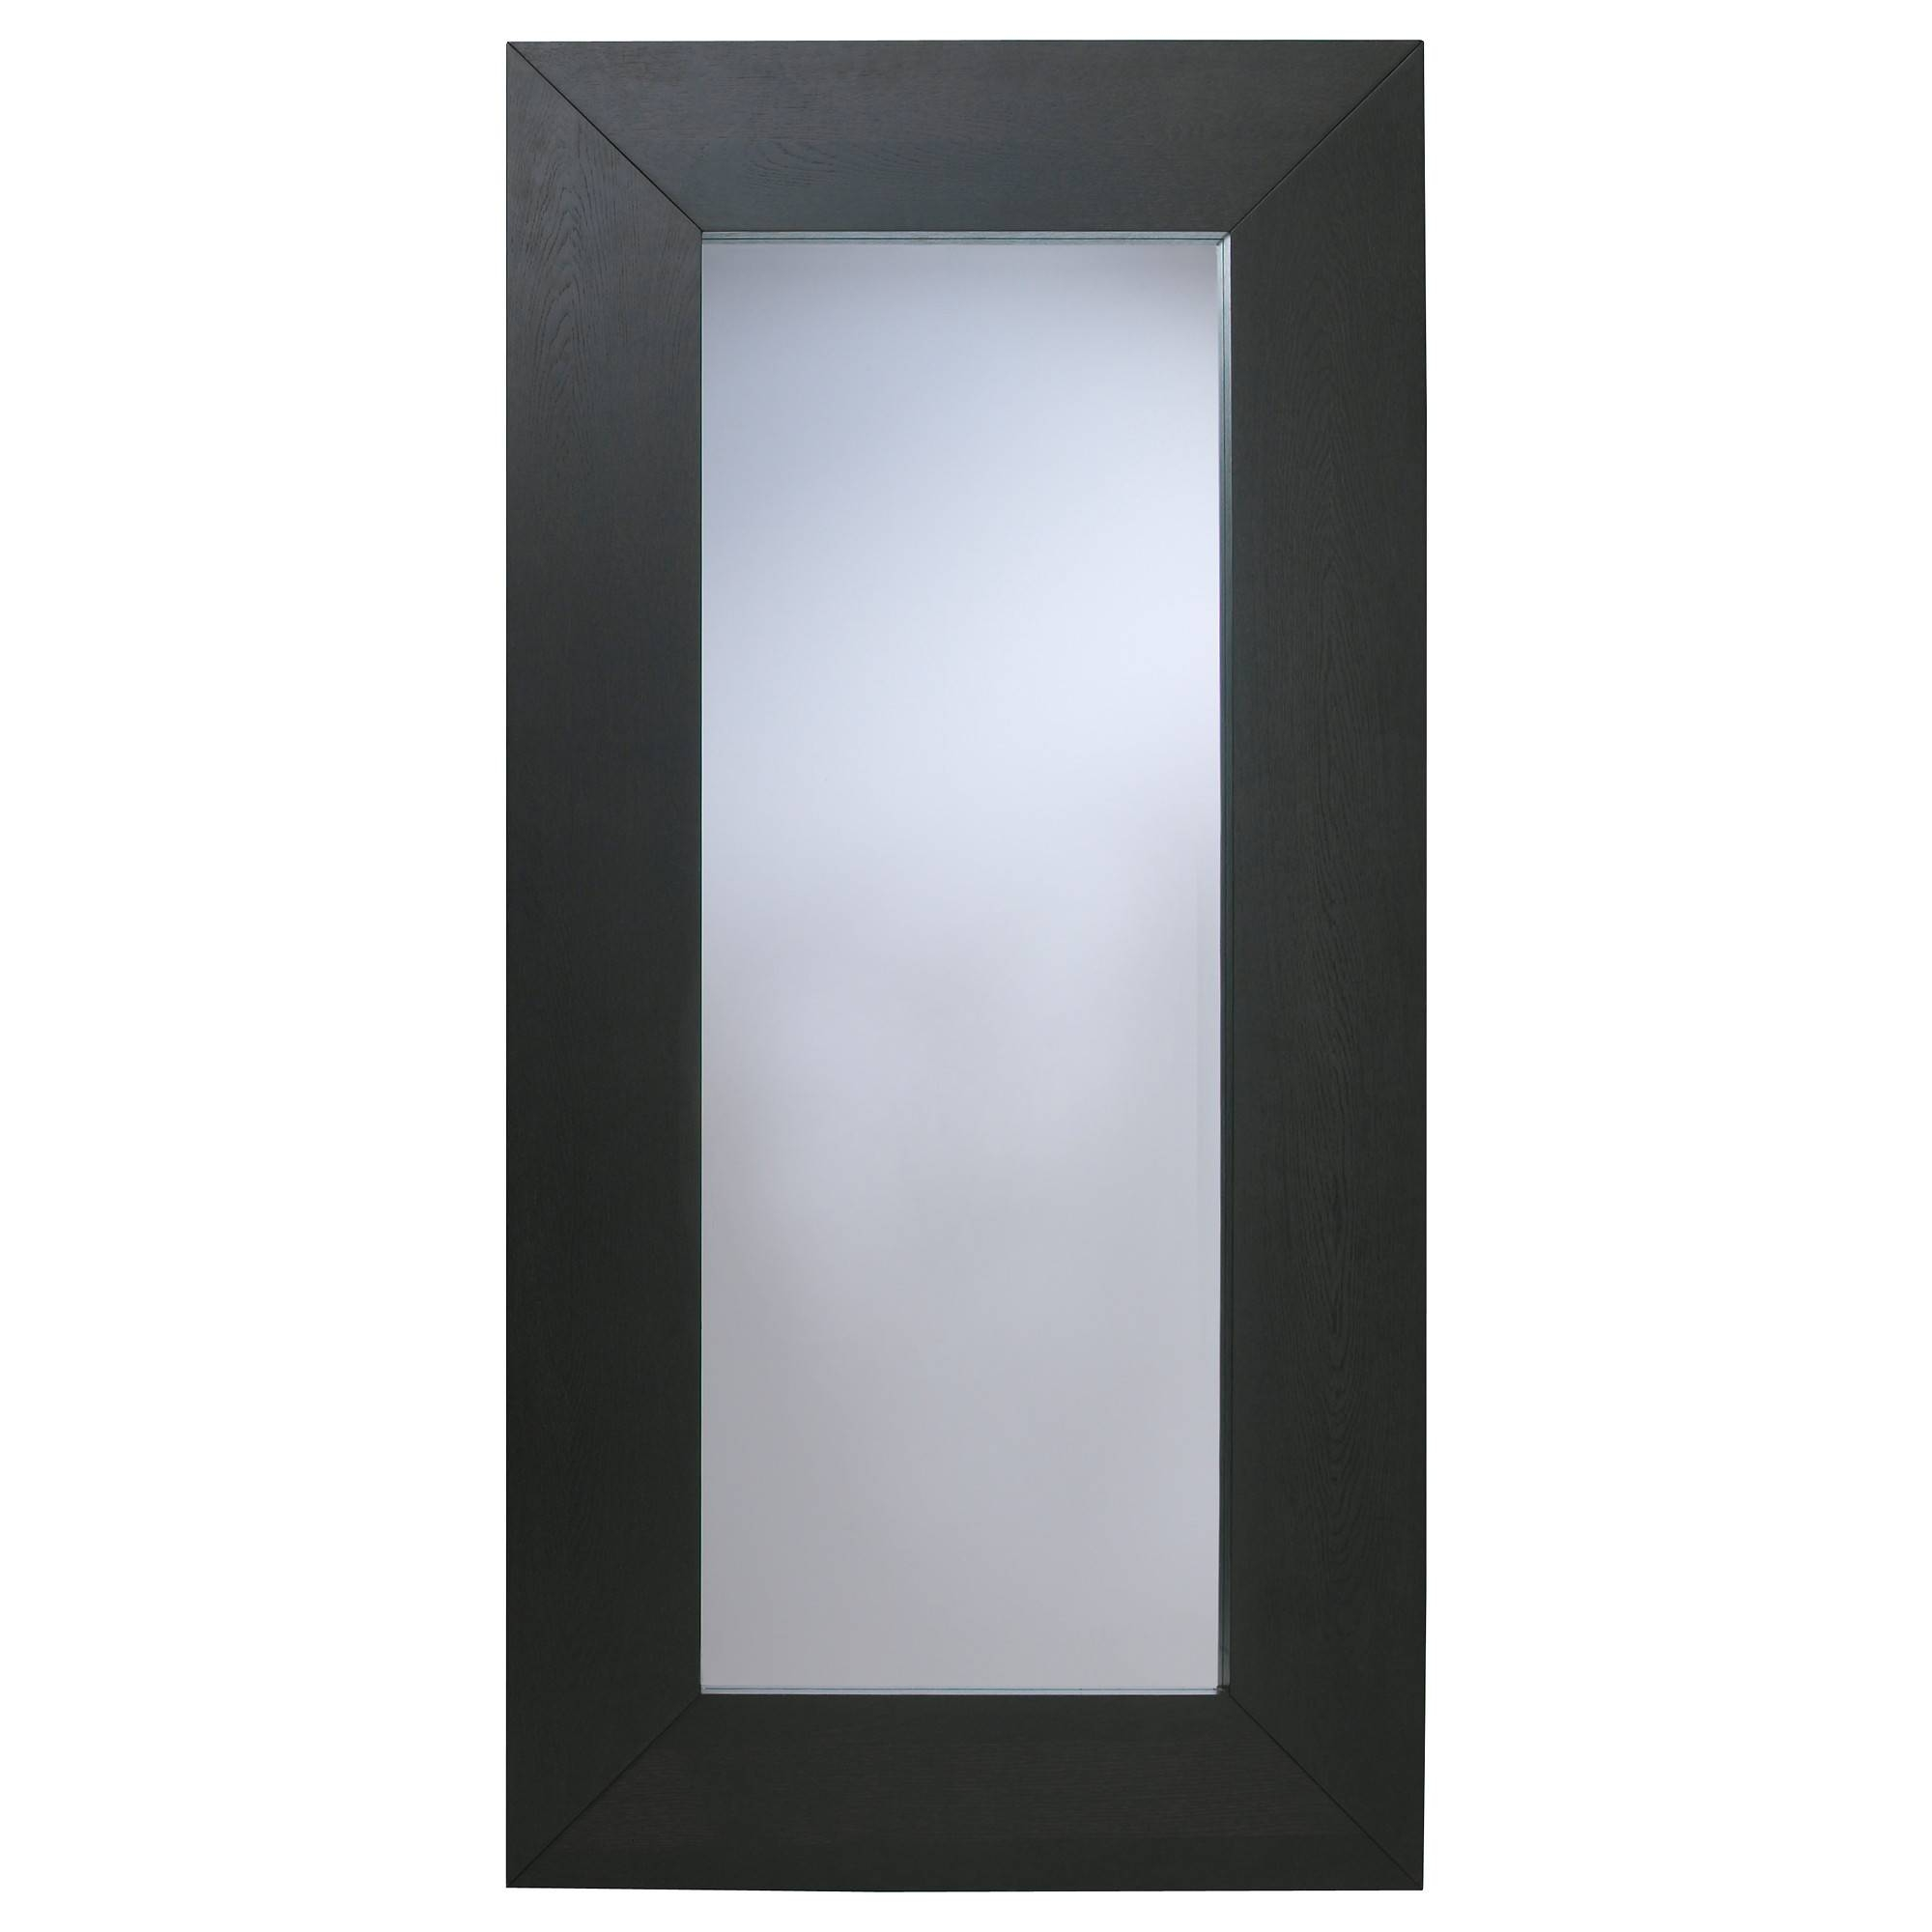 Mirrors - Ikea with Slim Wall Mirrors (Image 11 of 15)